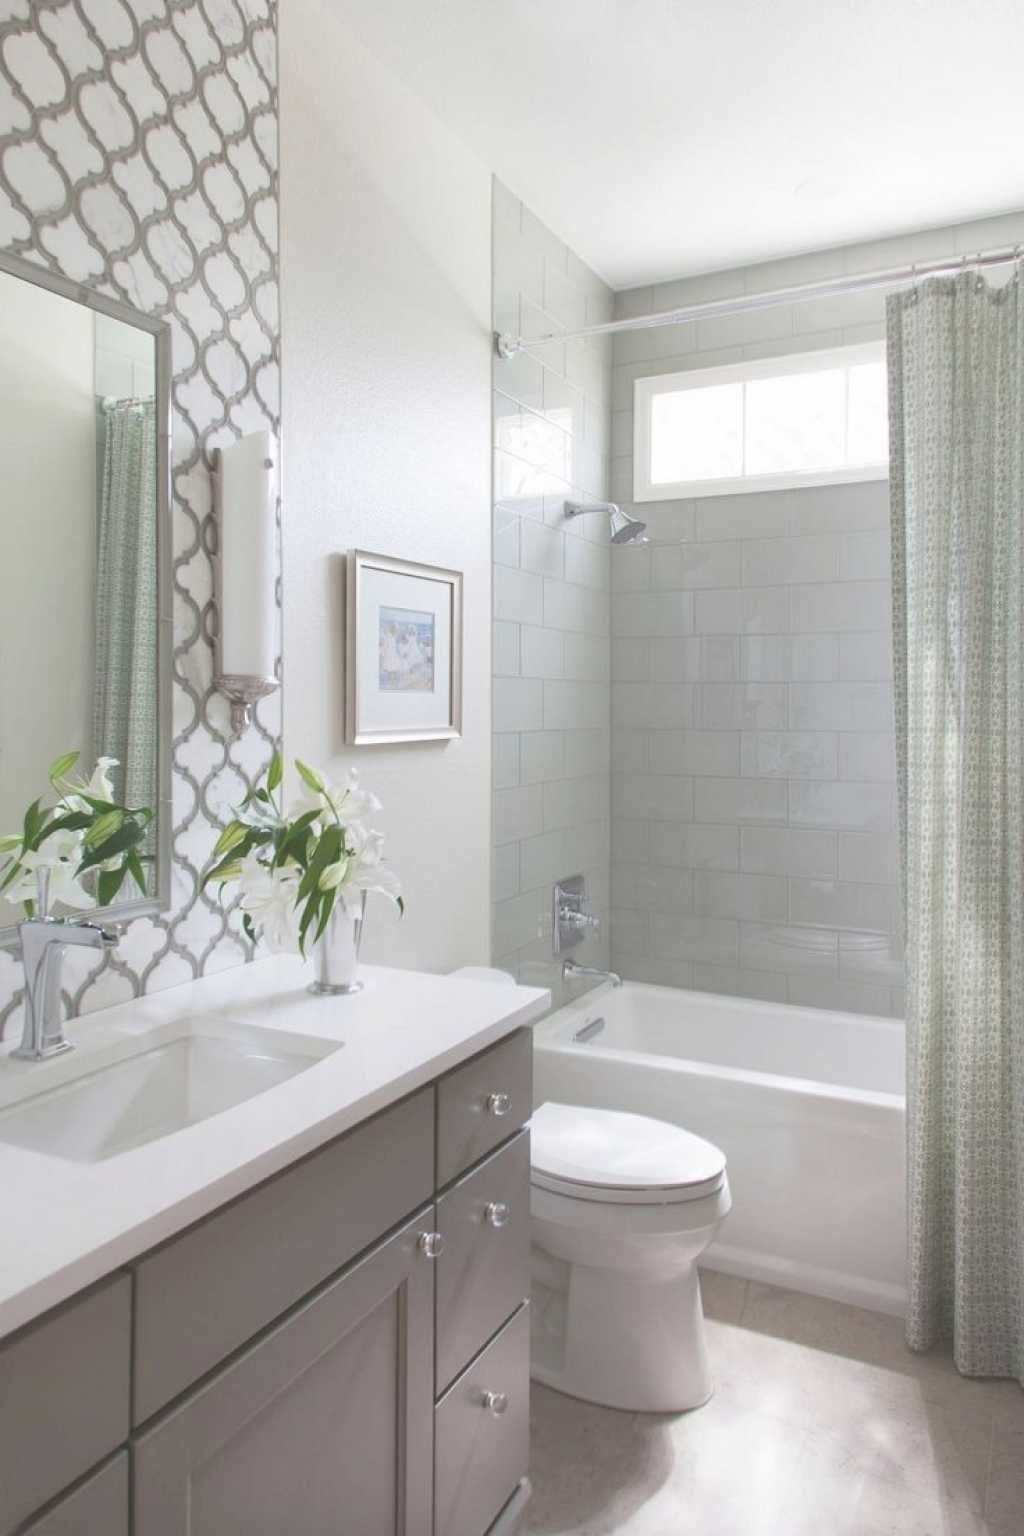 53 Gorgeous Small Modern Bathroom Design Ideas For Your Apartment Small Bathroom Renovations Bathroom Tub Shower Bathroom Design Small